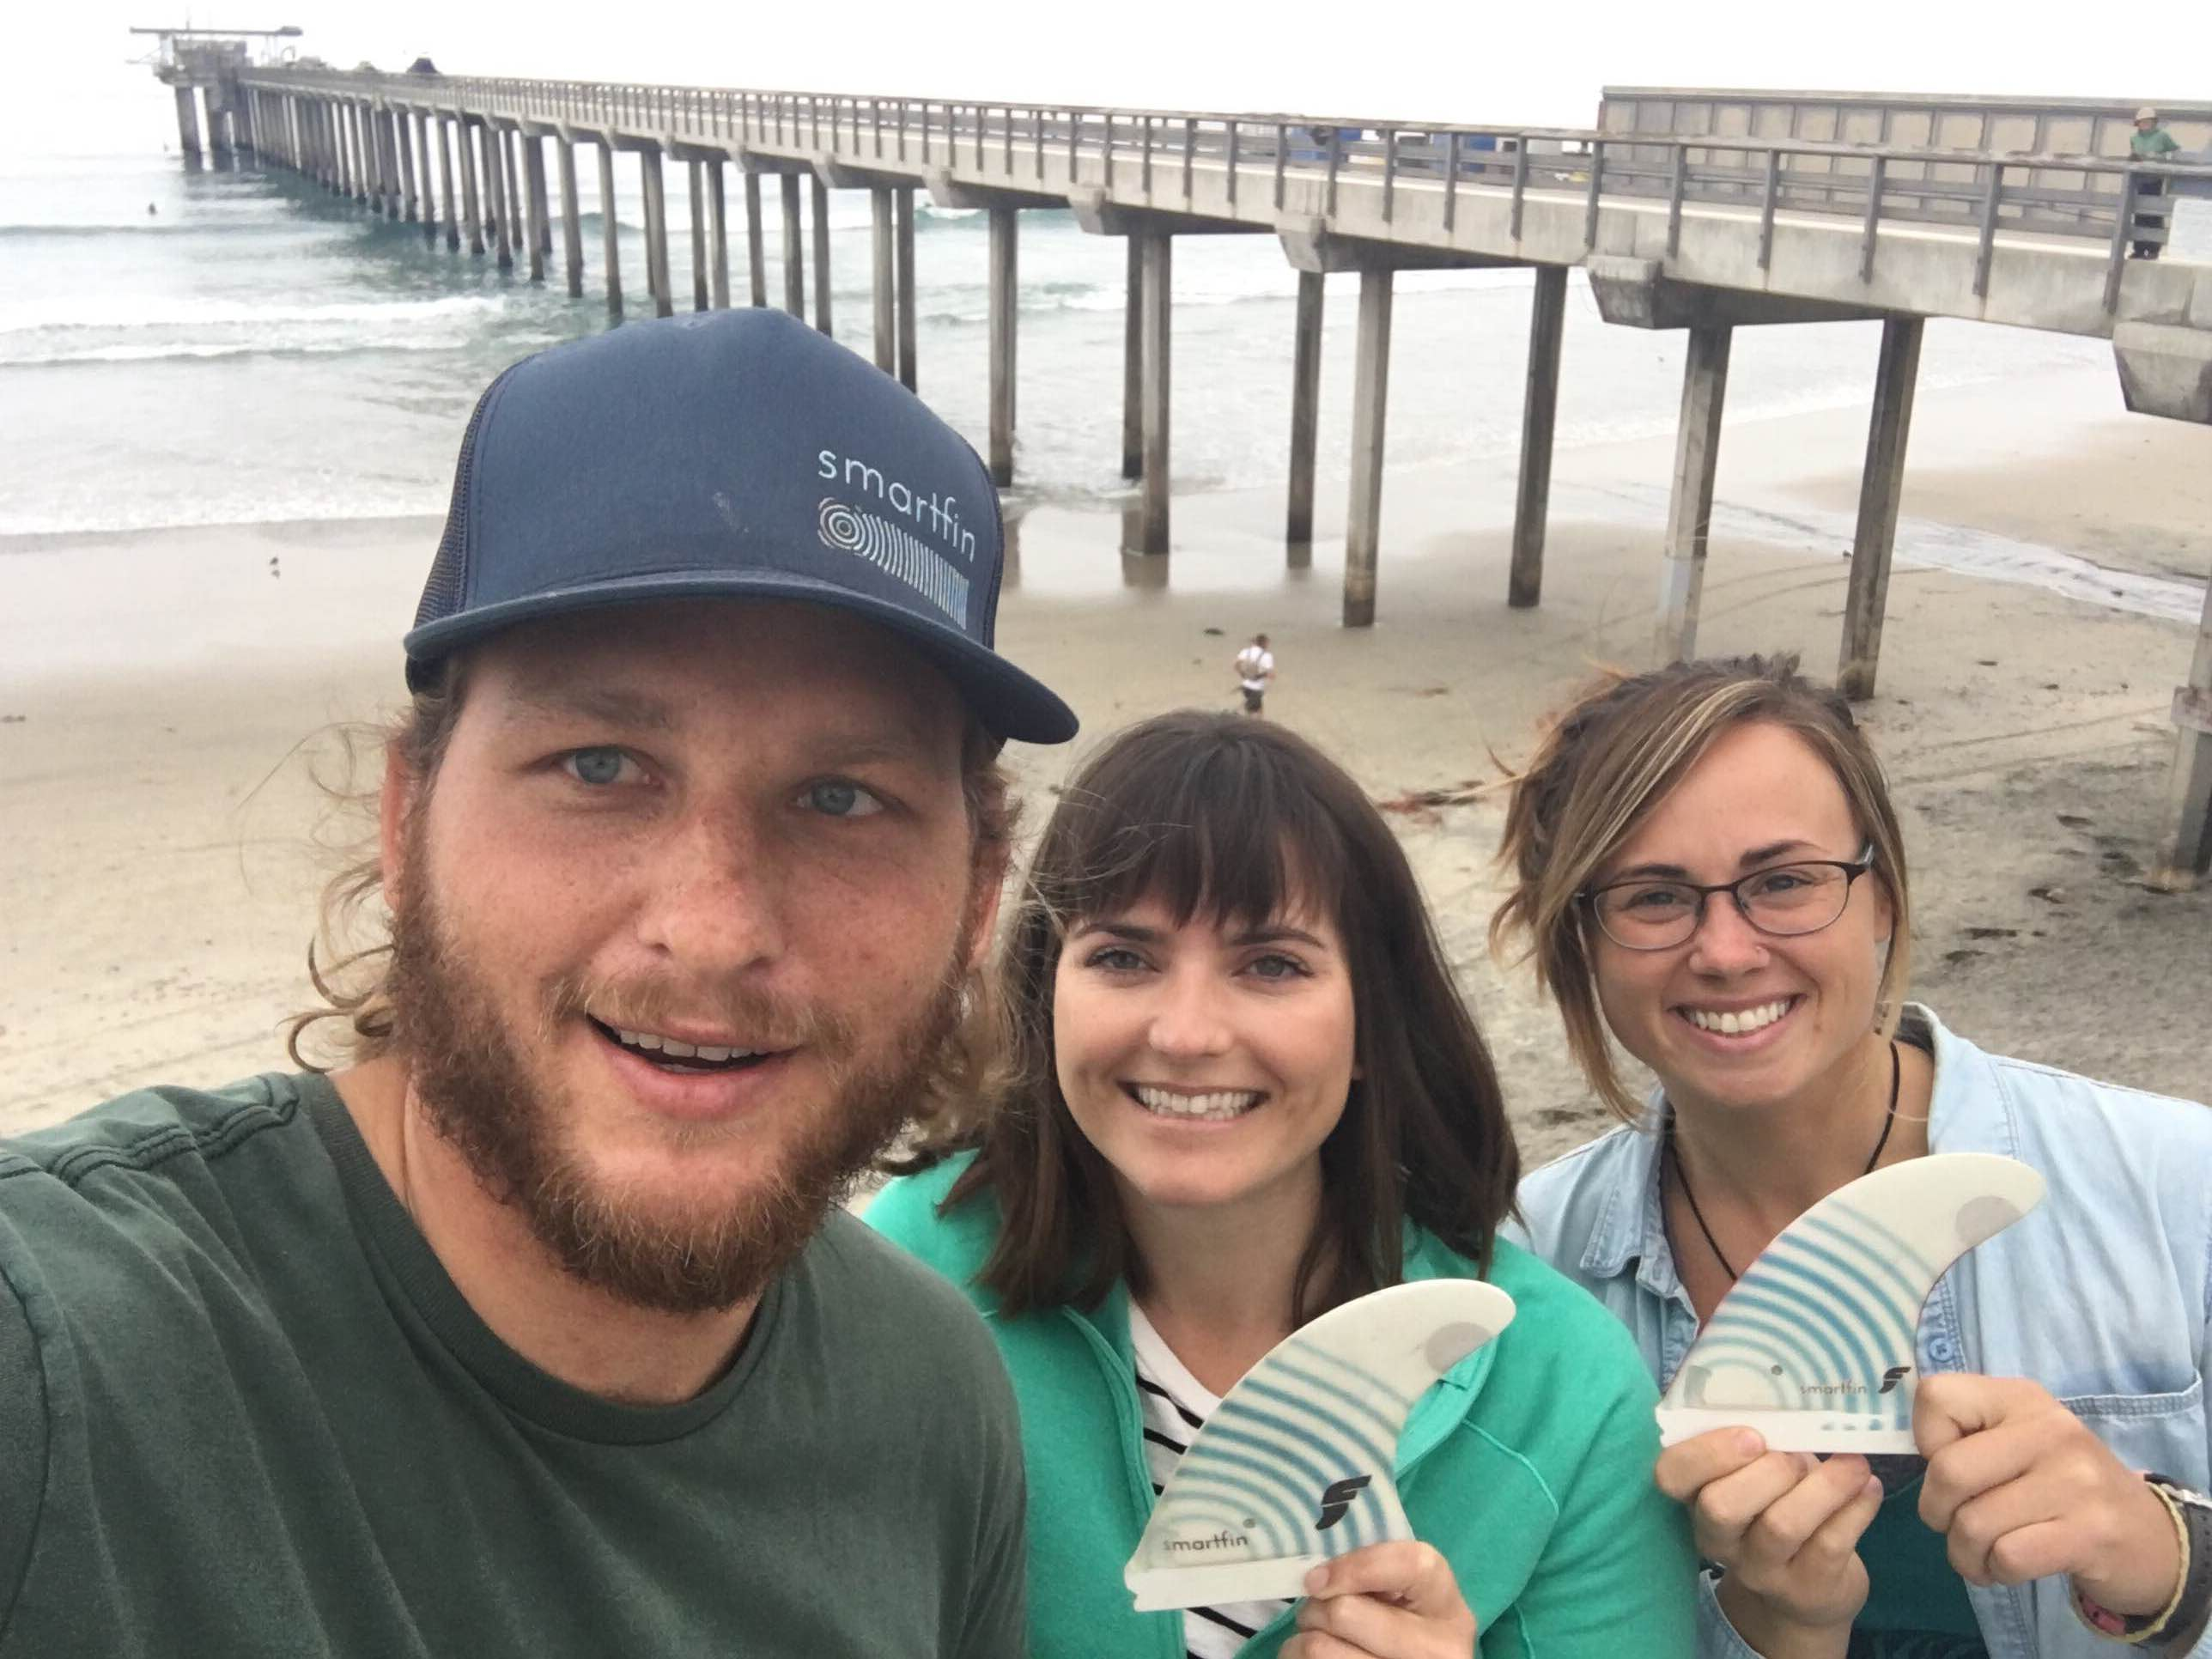 The Smartfin team in front of Scripps Pier. Many Scripps Institution of Oceanography scientists and local San Diegans enjoy surfing by the pier.